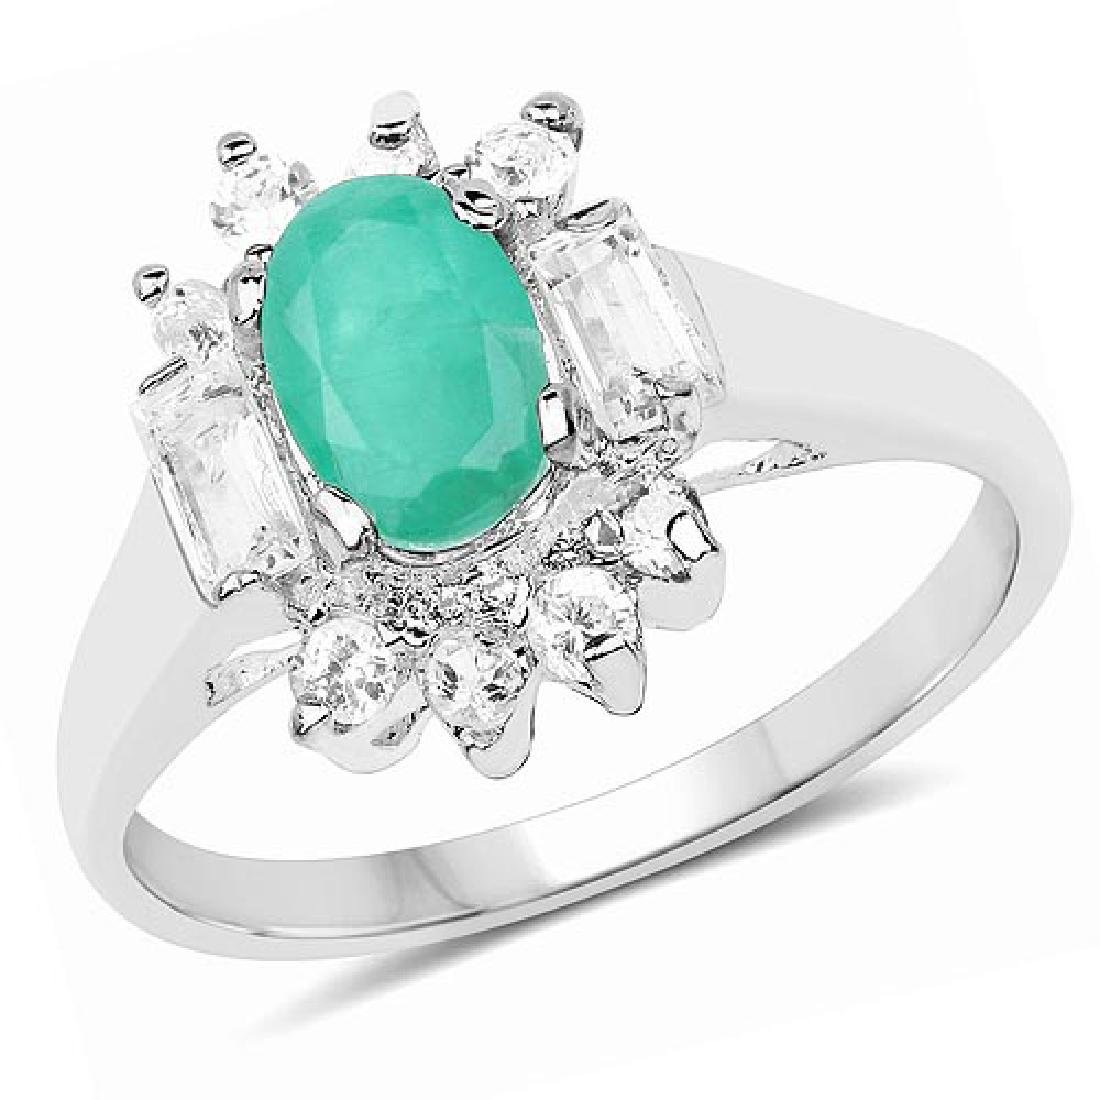 1.23 Carat Genuine Emerald and White Topaz .925 Sterlin